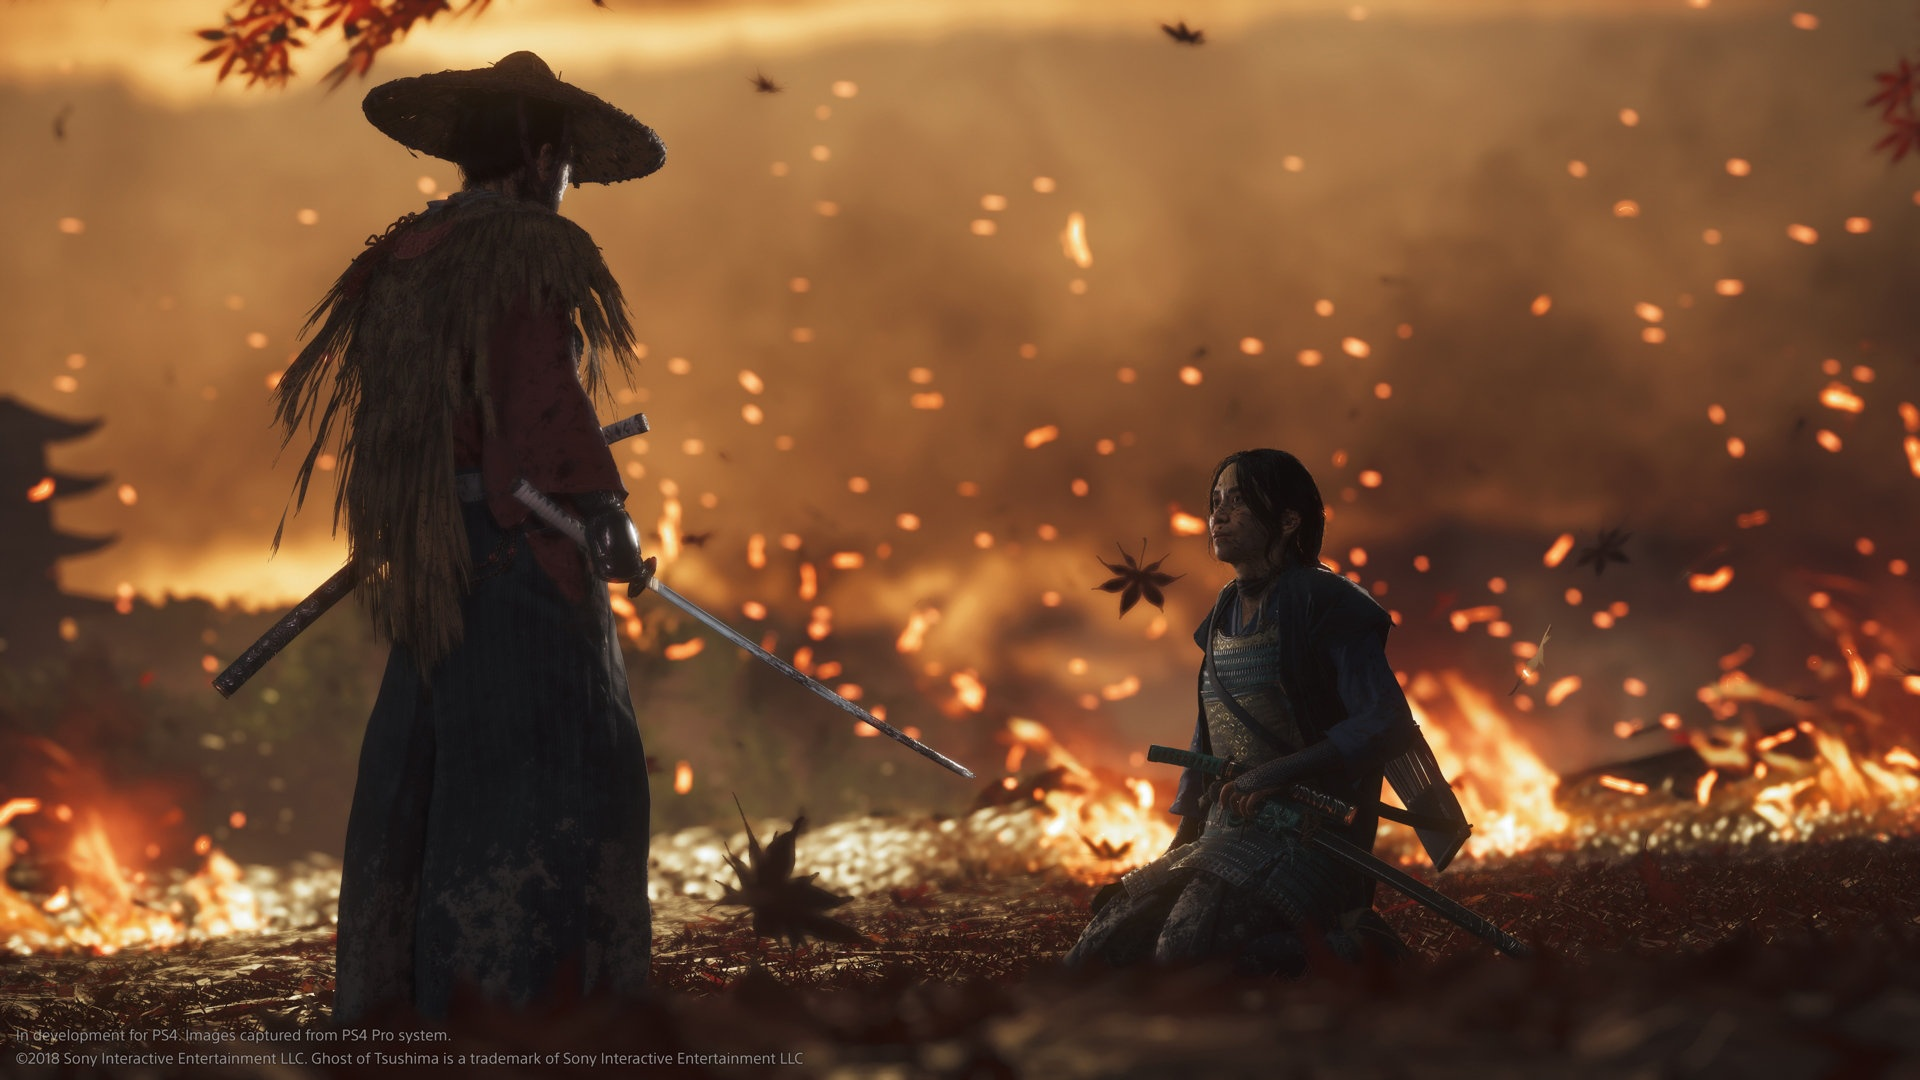 Bringing feudal Japan to life in Ghost of Tsushima